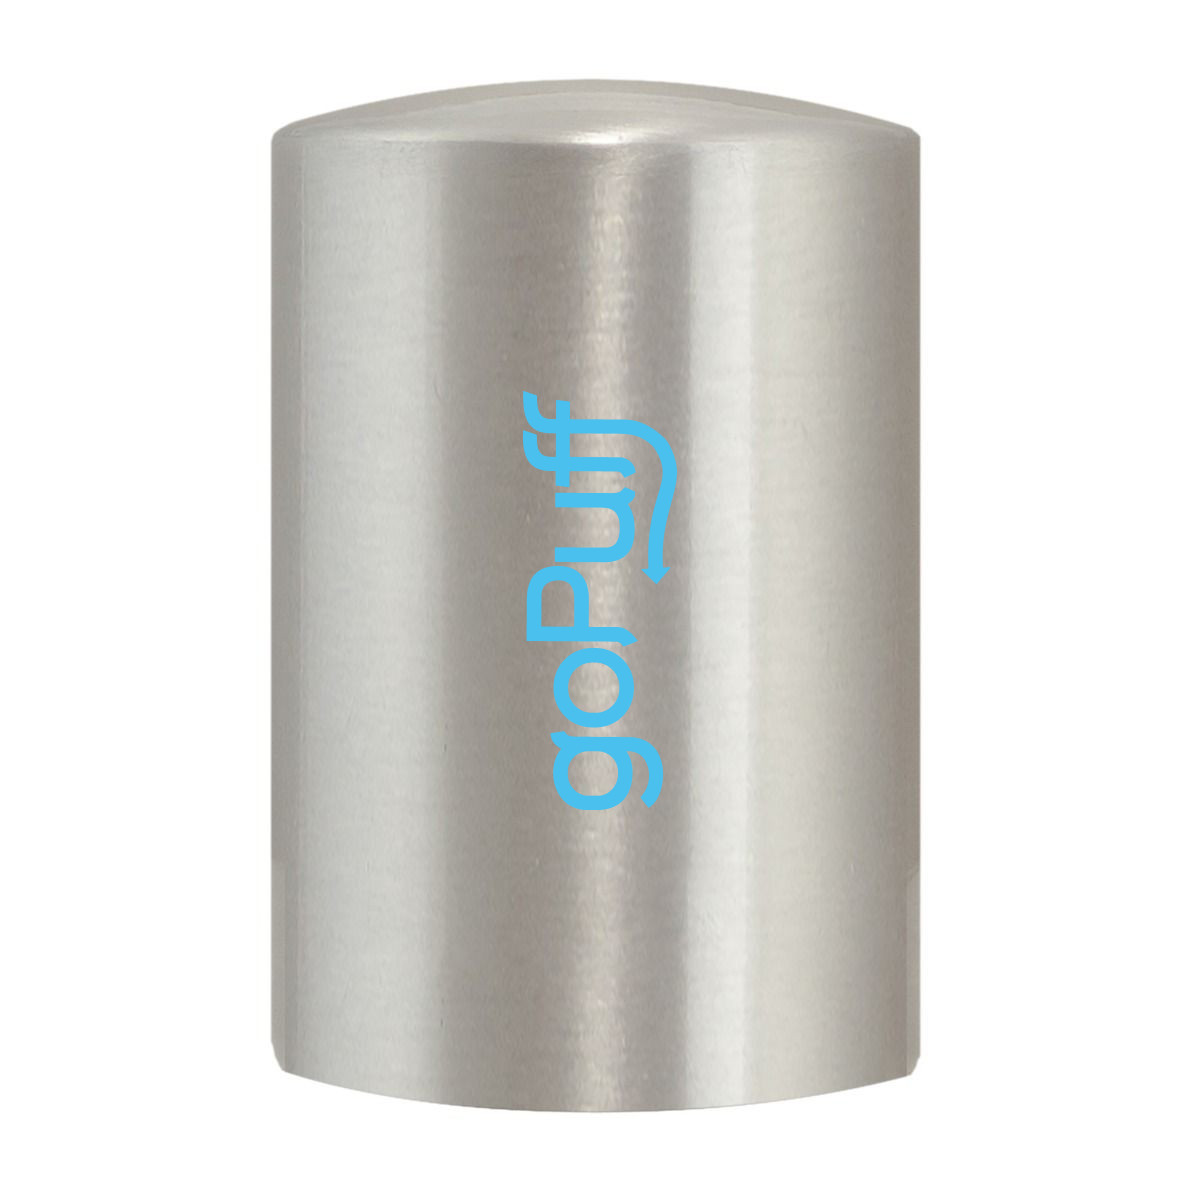 Stainless Automatic Bottle Opener